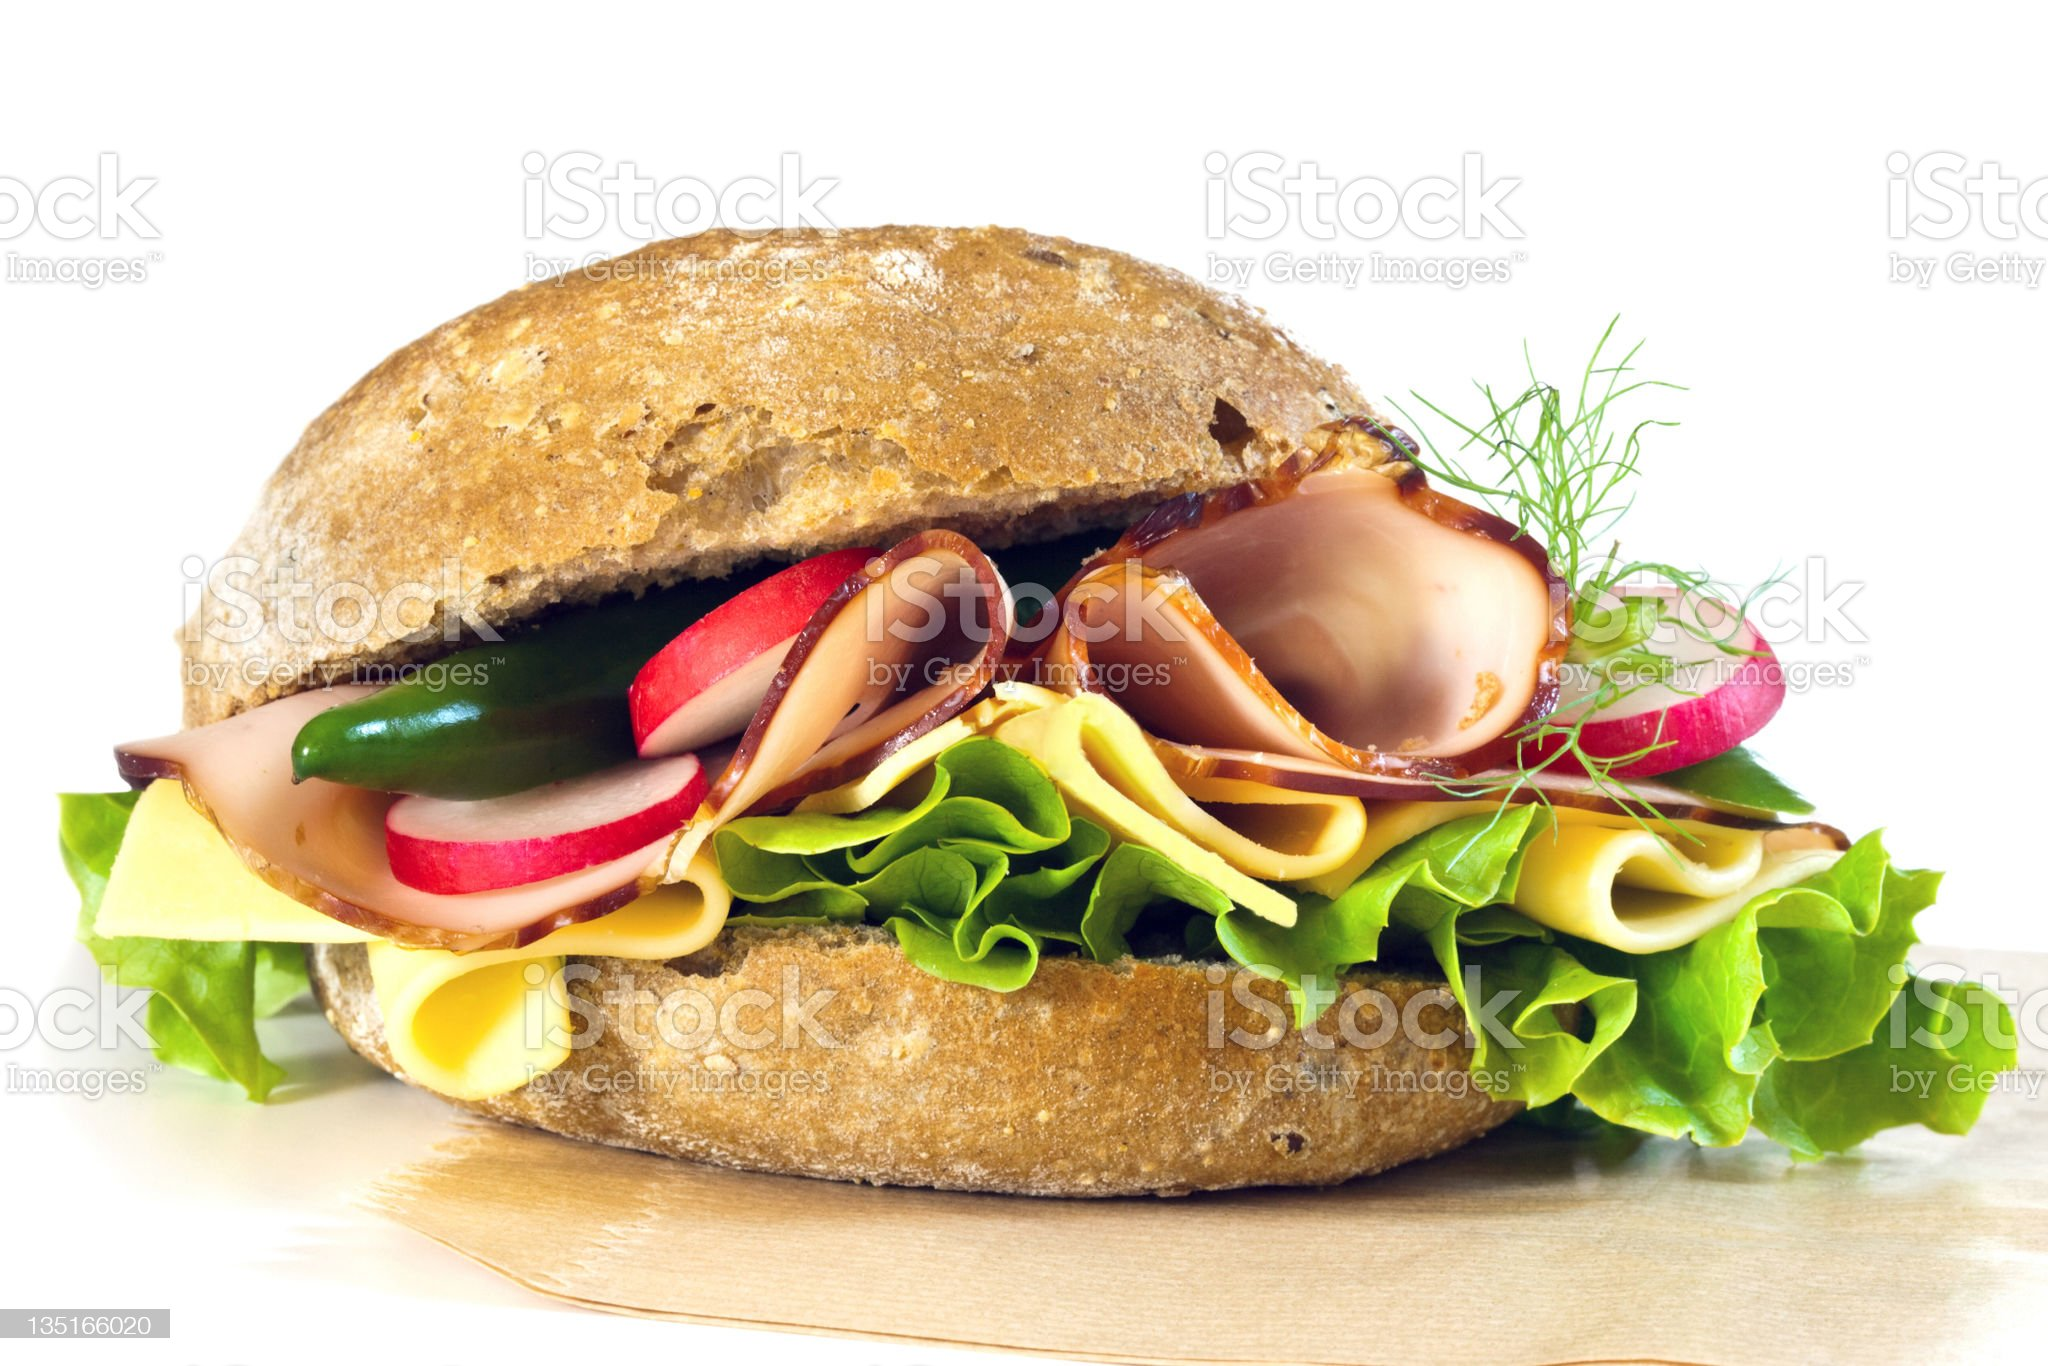 Sandwich on paper royalty-free stock photo